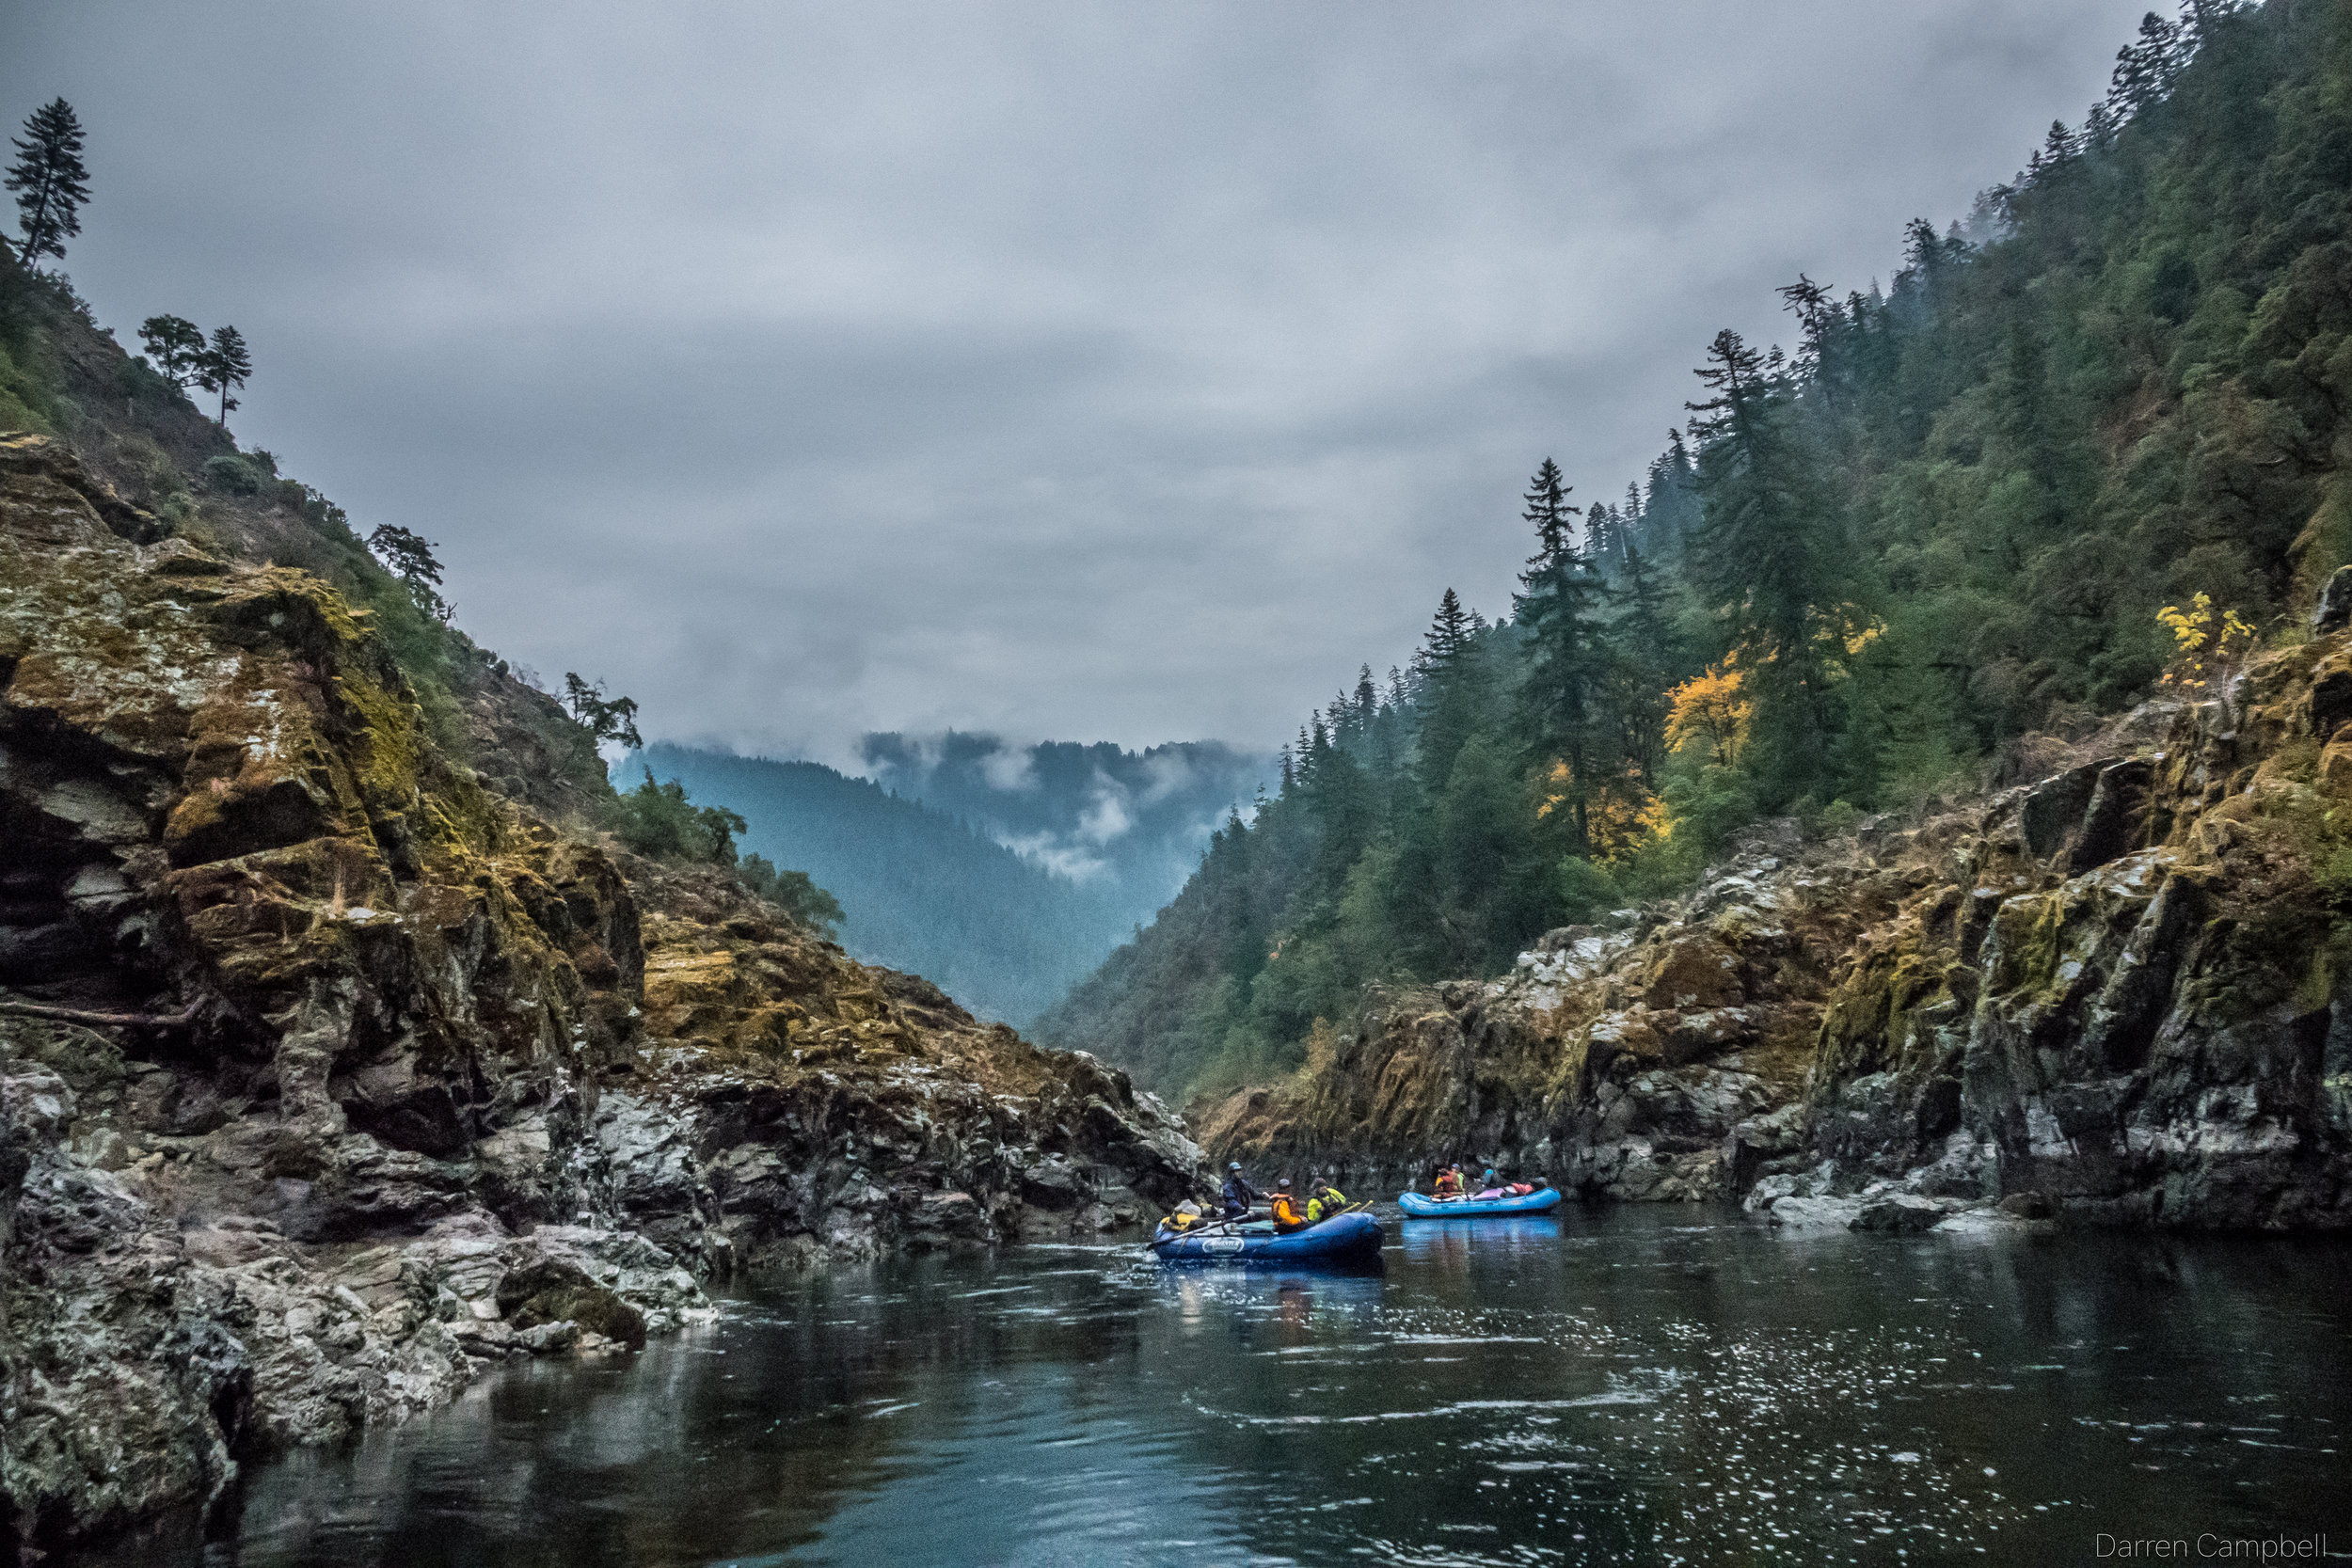 Floating the Wild & Scenic lower Rogue in the fall. Photo by Darren Campbell